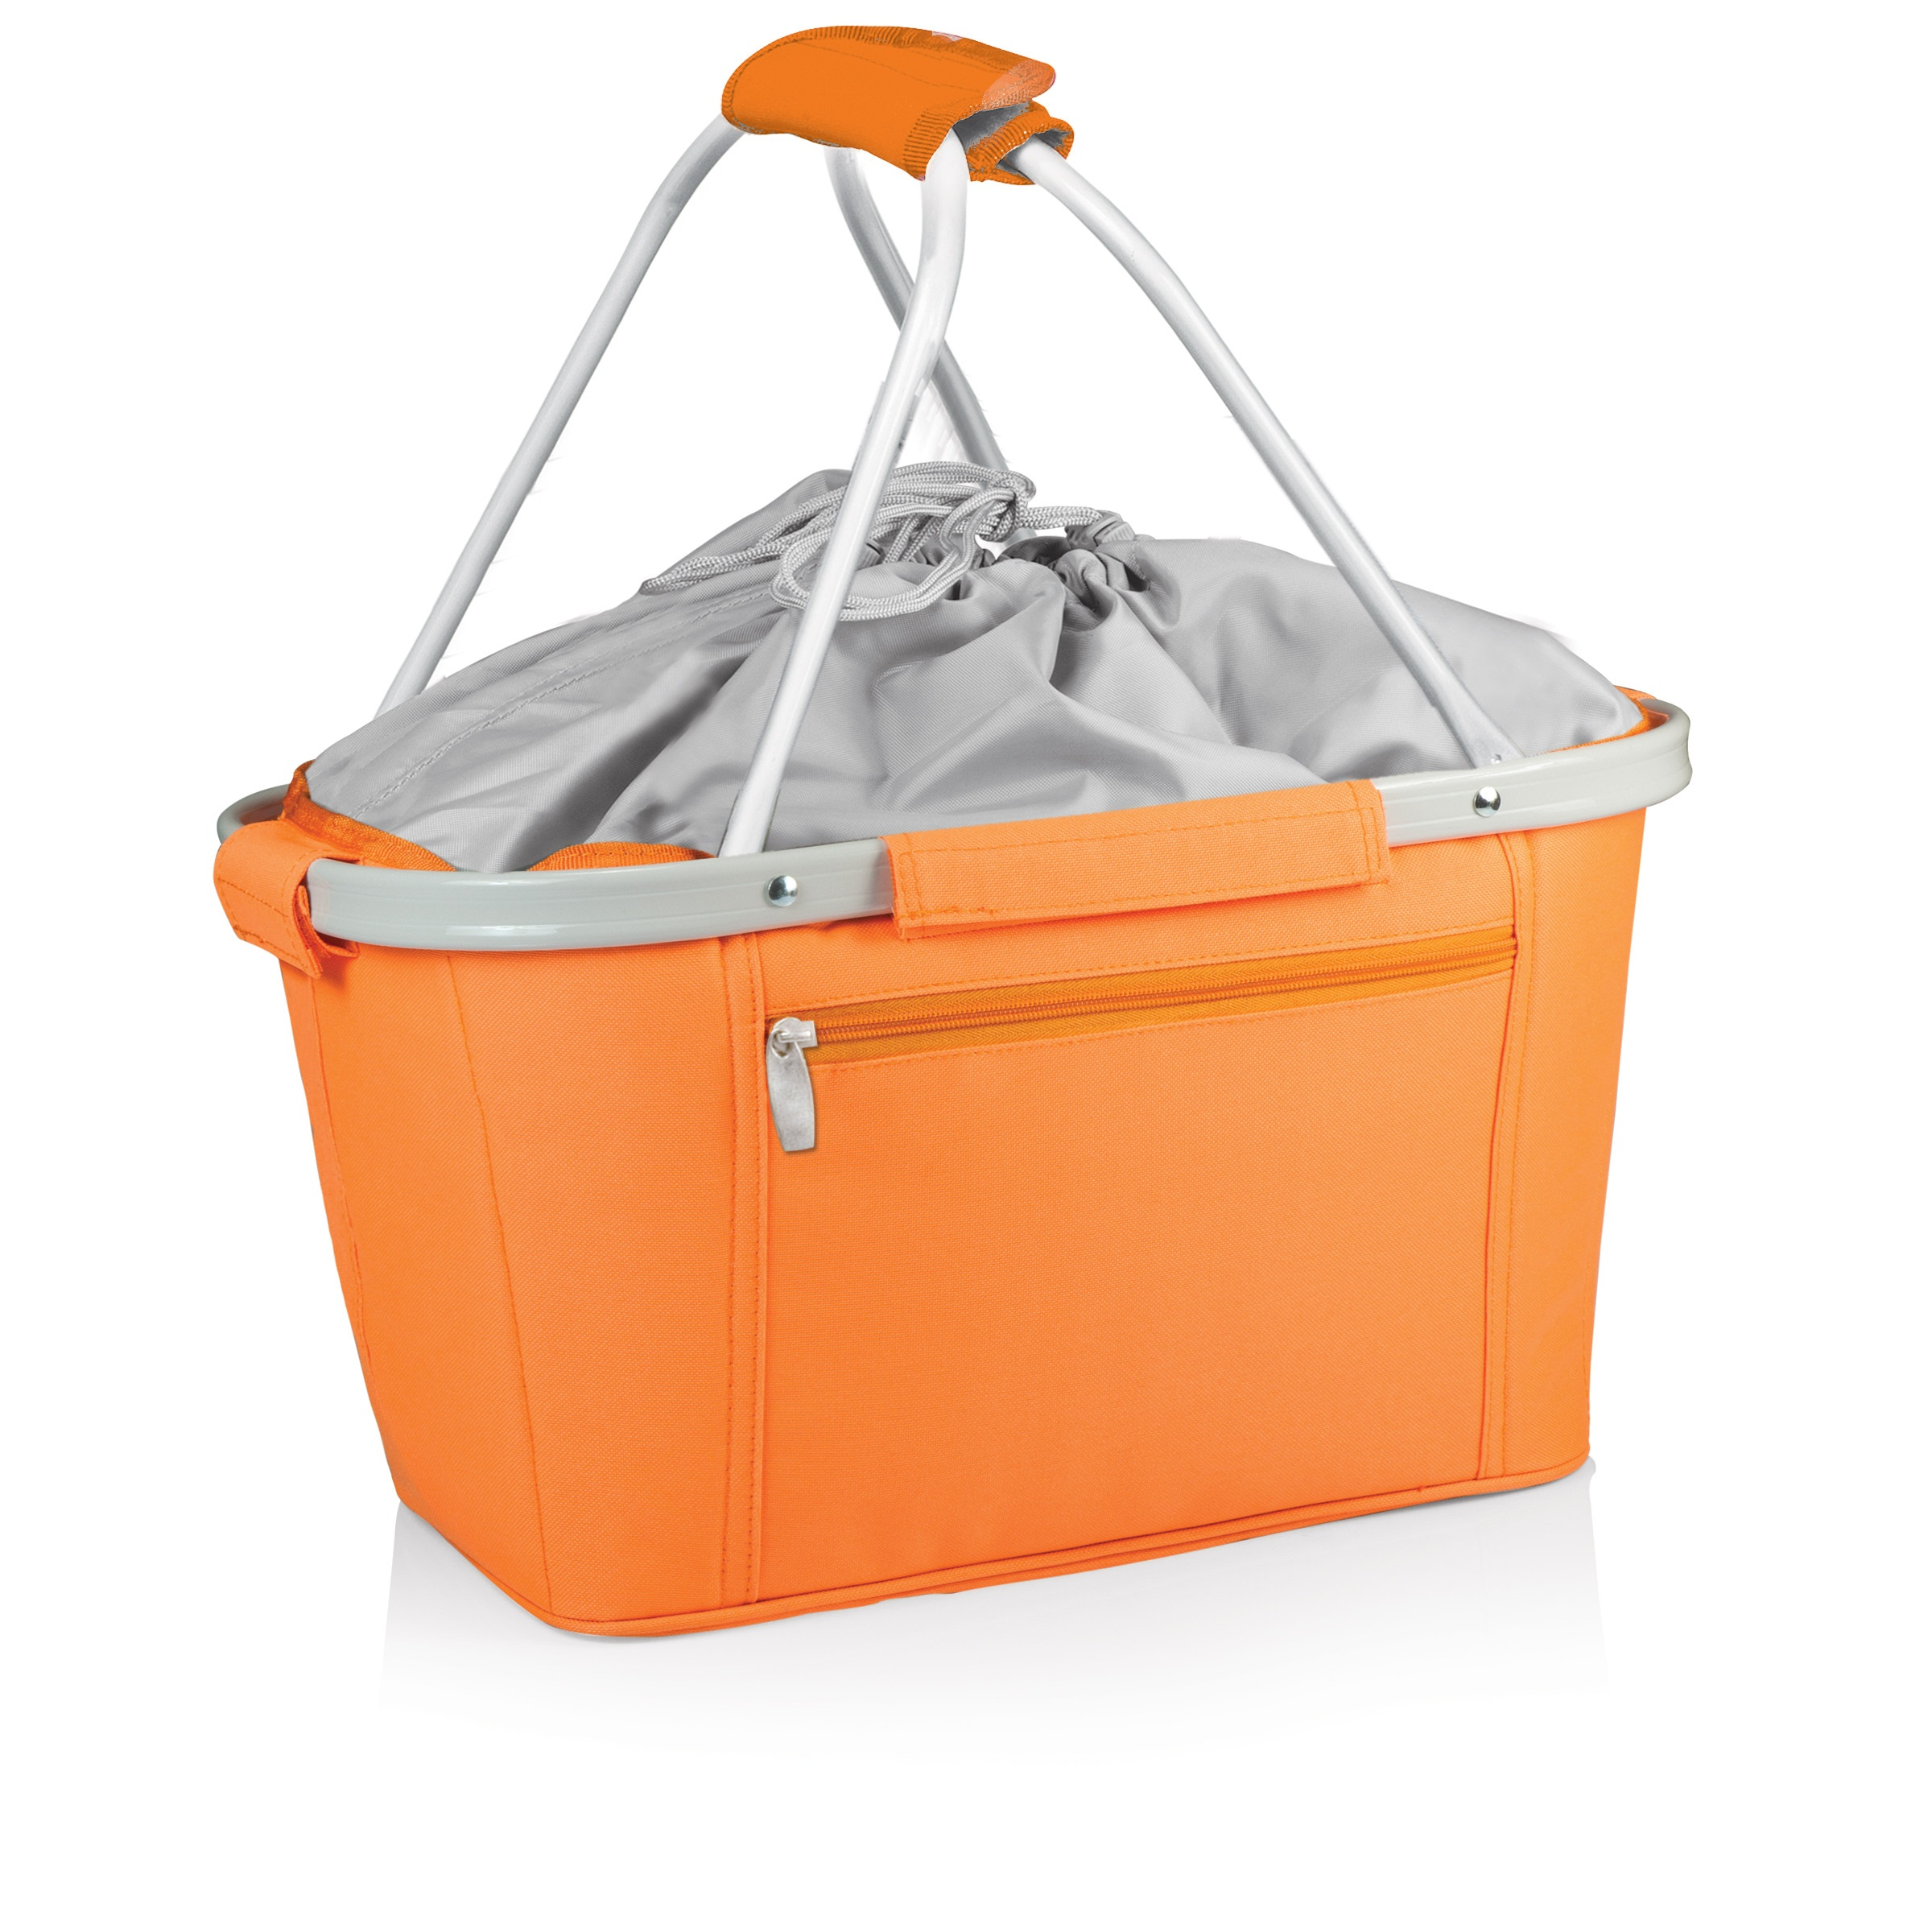 Picnic Basket Empty : Picnic time metro waterproof polyester canvas empty